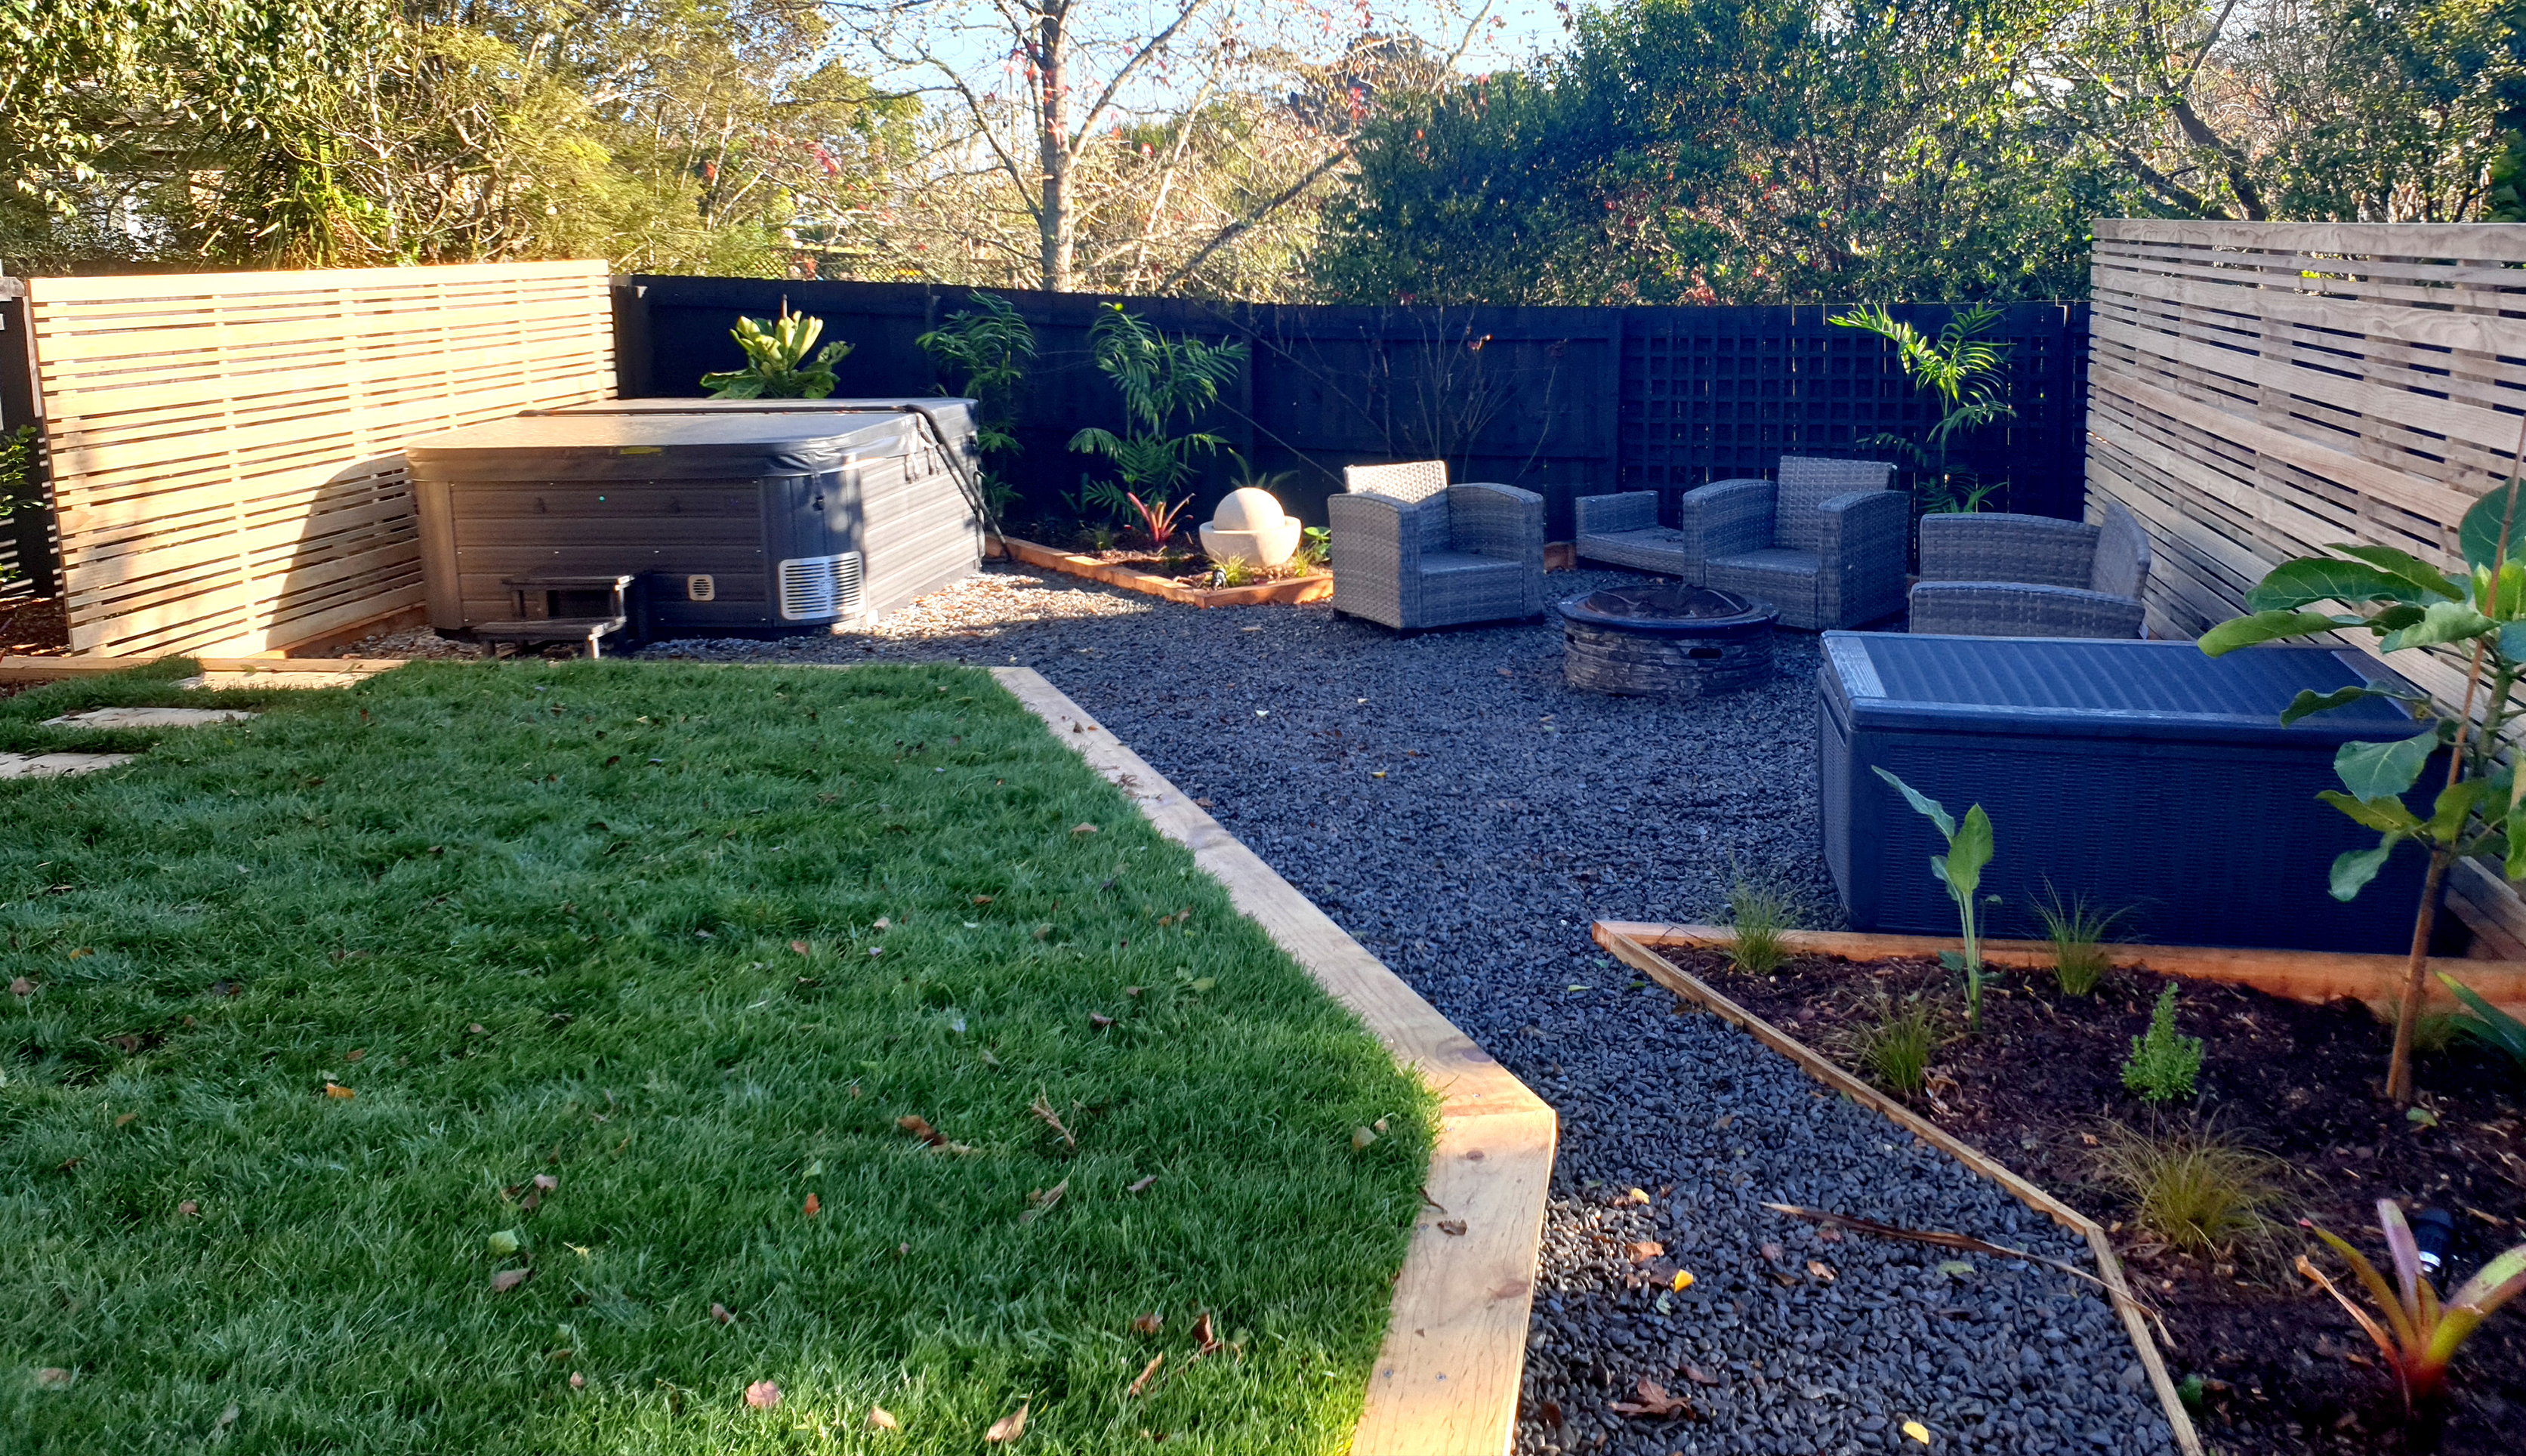 Backyard transformation into home resort in West Auckland